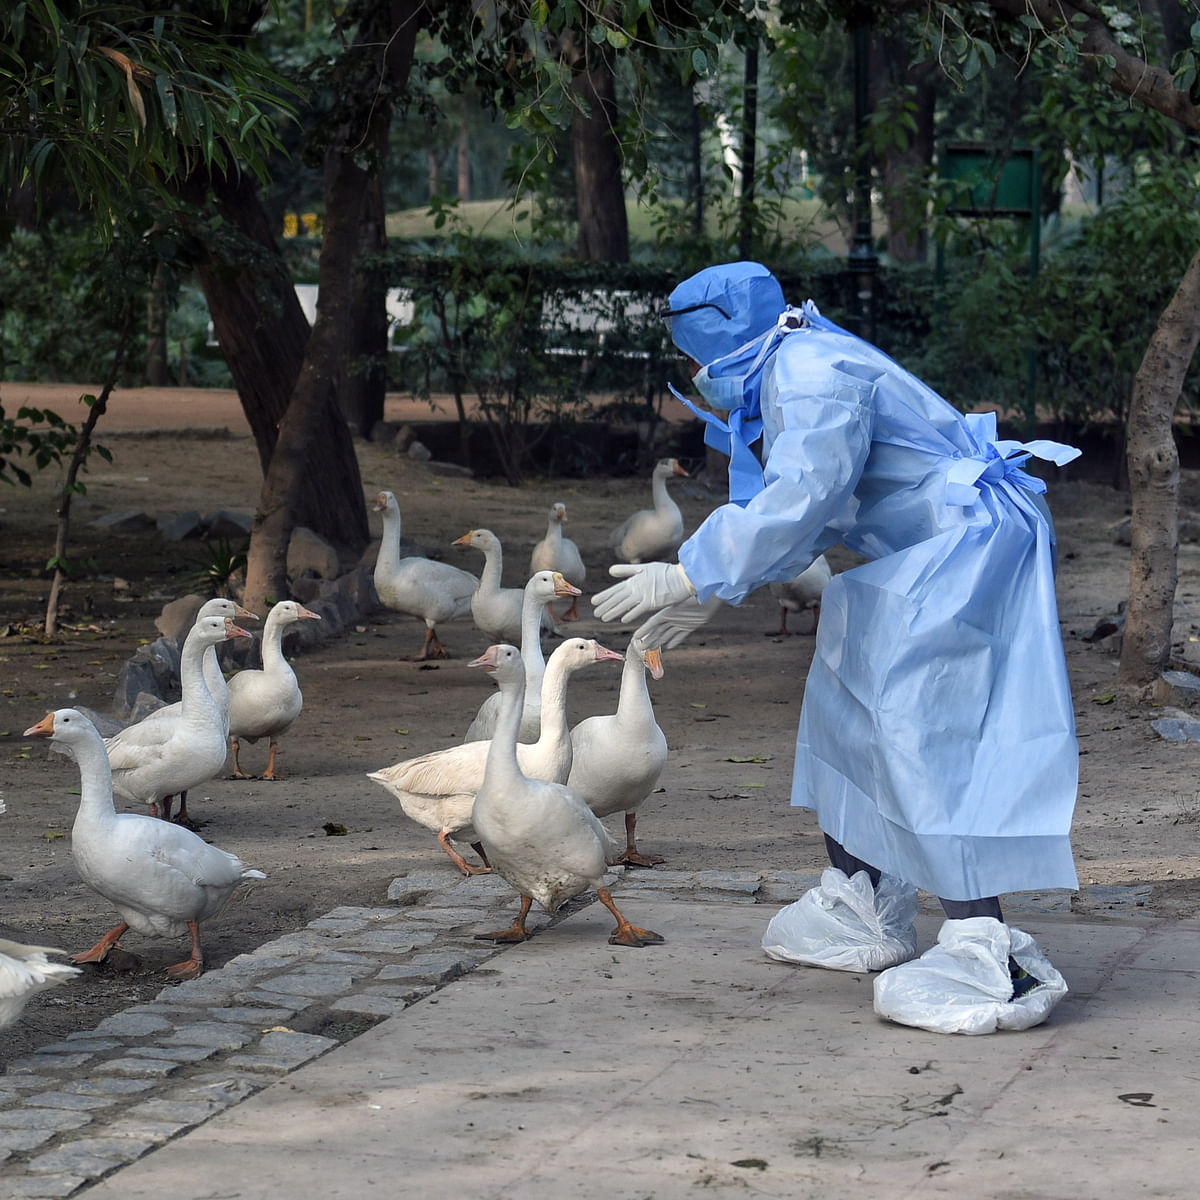 Bird flu outbreak in Maharashtra: Thane civic body sets up control room